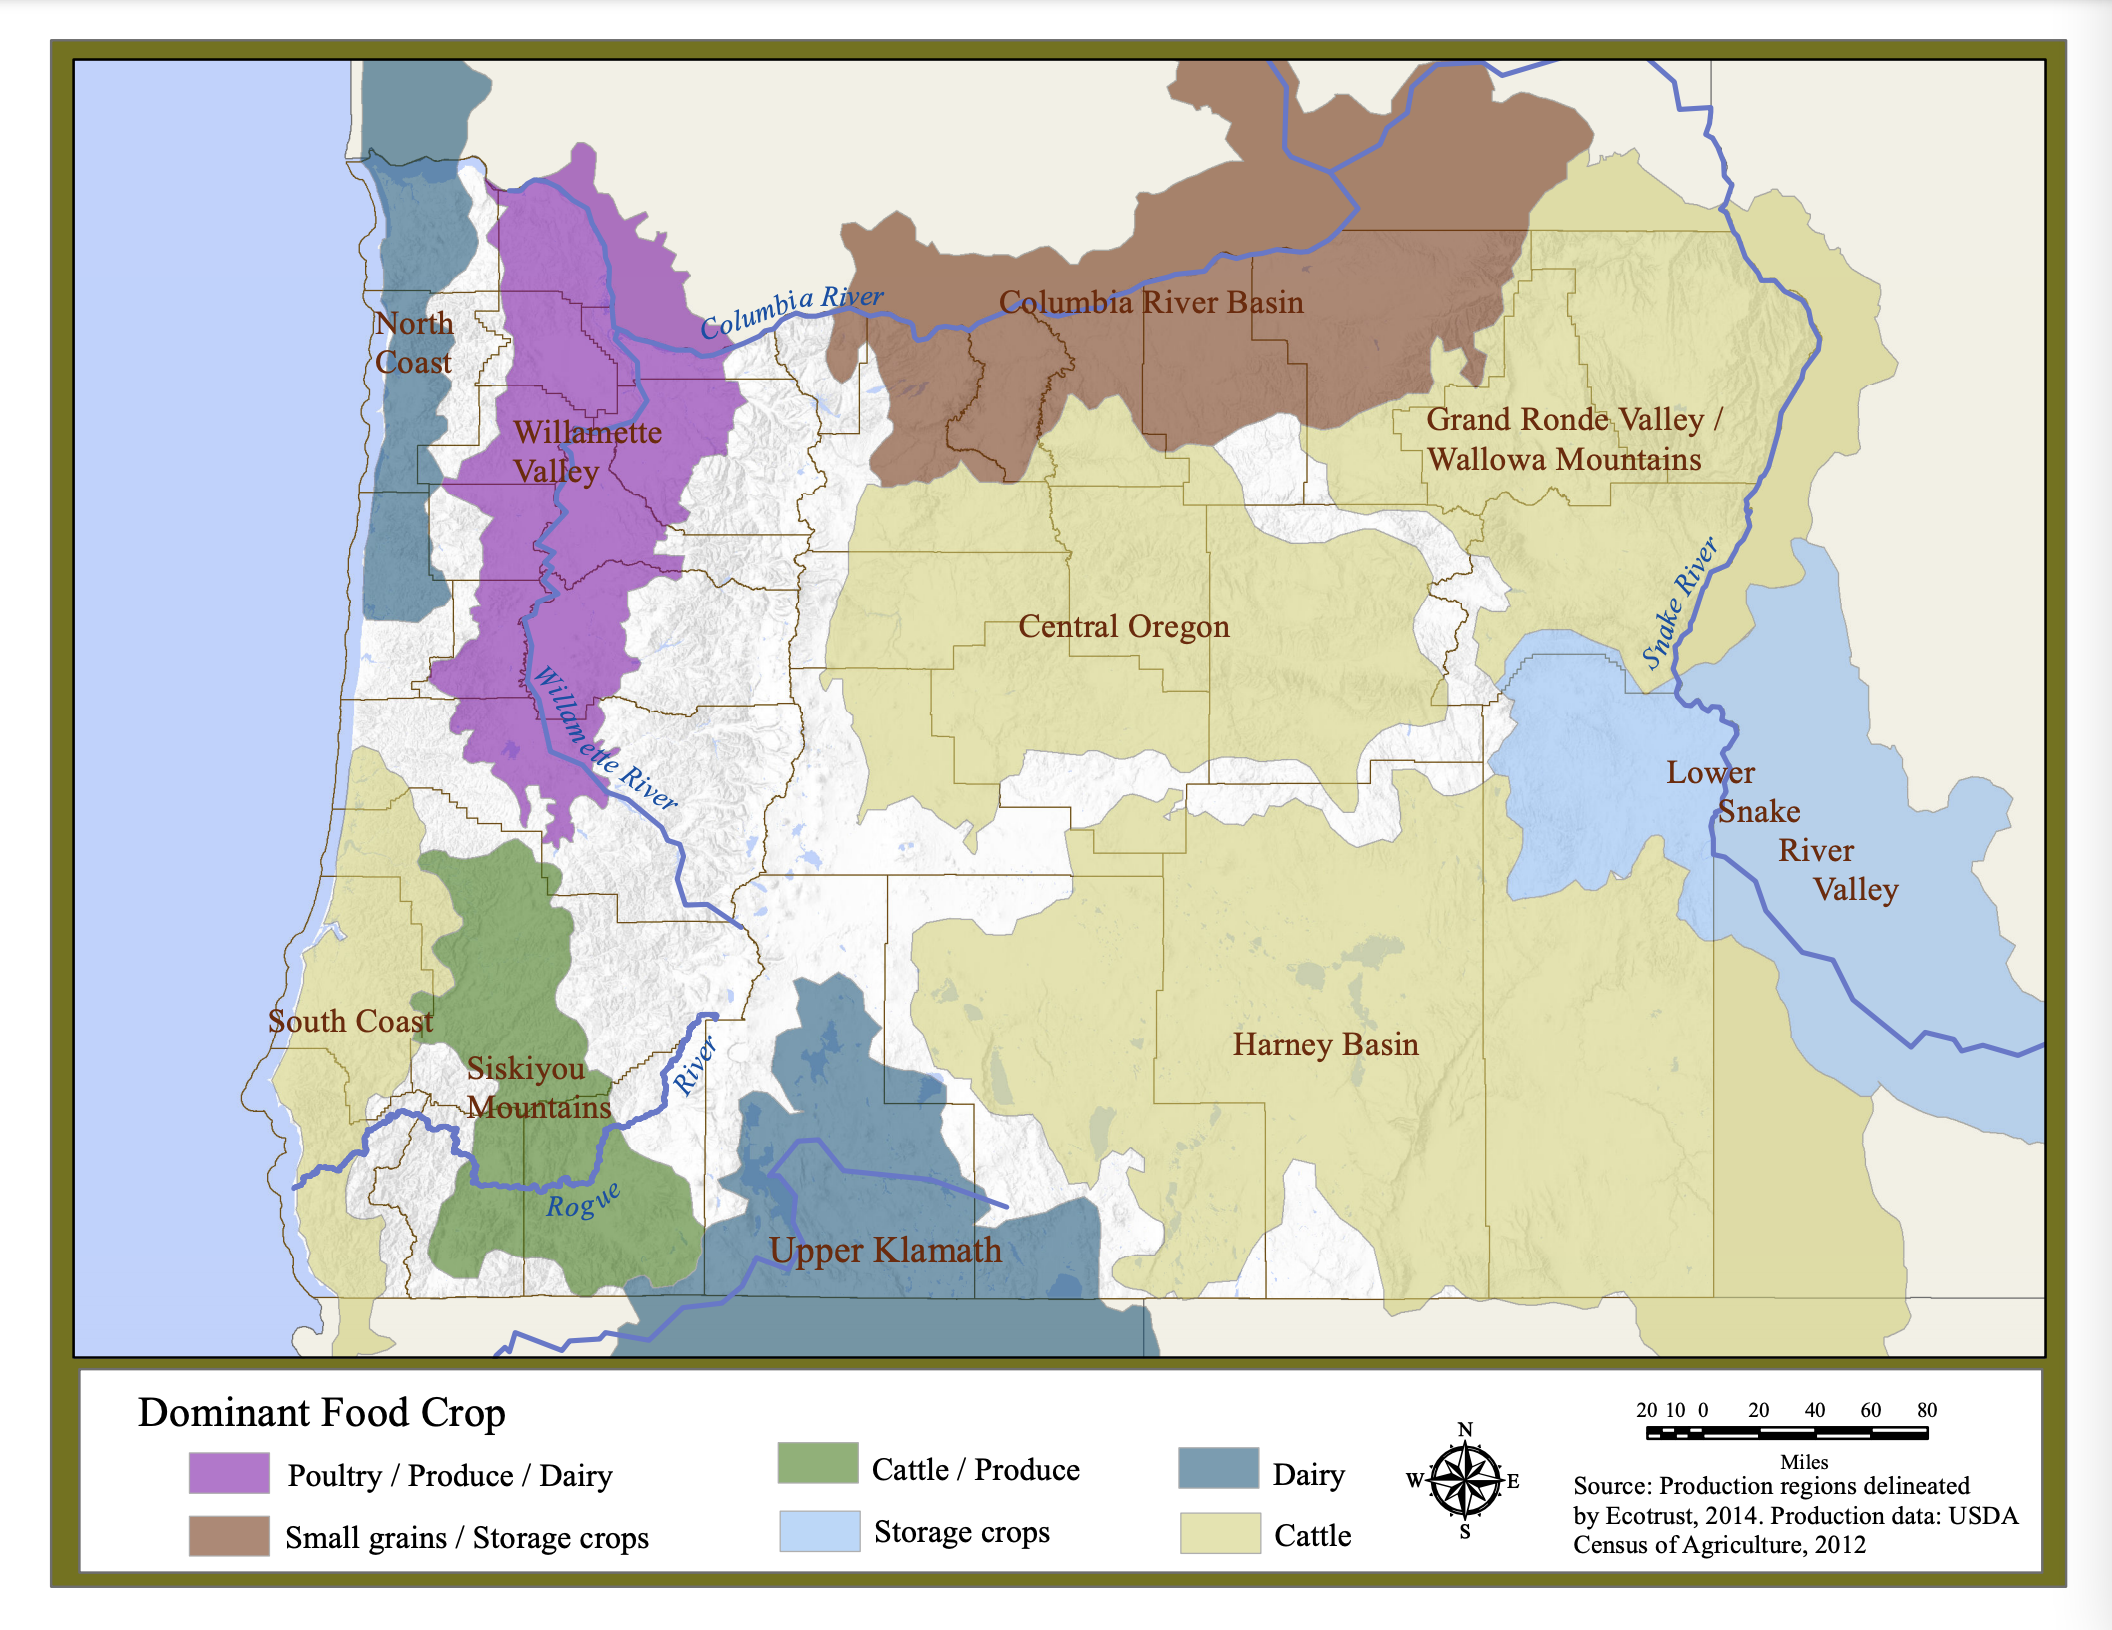 """This map shows the major growing regions across the state of Oregon, highlighting the primary products produced in that area. The inherent heterogeneity of production is dependent on a wide array of geoclimatic and anthropogenic factors, but rarely follow political boundaries. Infrastructure capacity has also emerged differently in different regions due not only to production possibilities and market demand, but also because of varying access to markets, technology lock-in, and path dependence. Learn more from <a href=""""https://ecotrust.org/publication/regional-food-infrastructure/"""">our Oregon Food Infrastructure Gap Analysis</a>."""